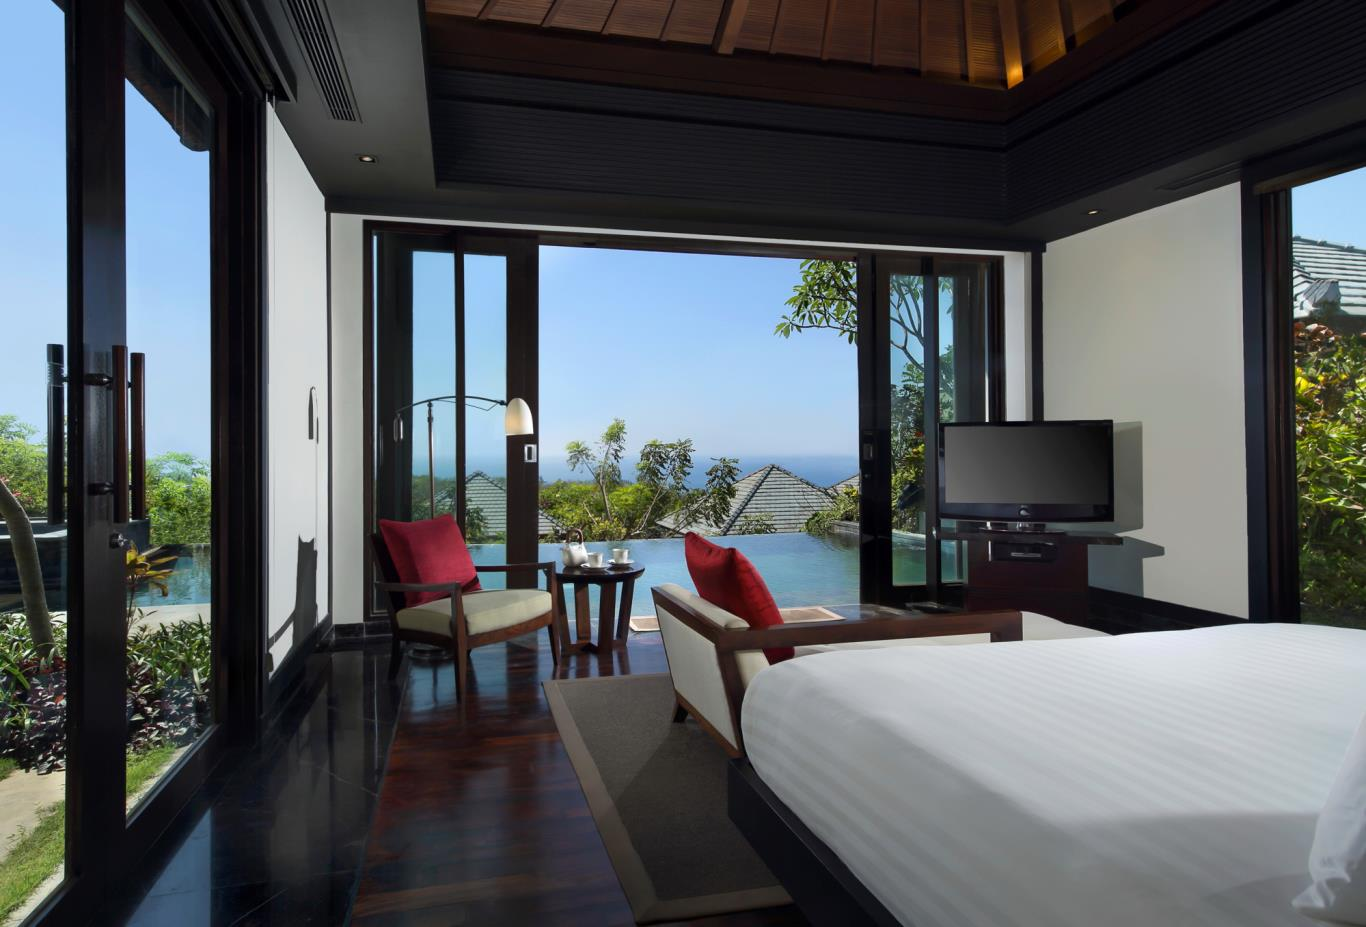 Pool Villa Sea bedroom